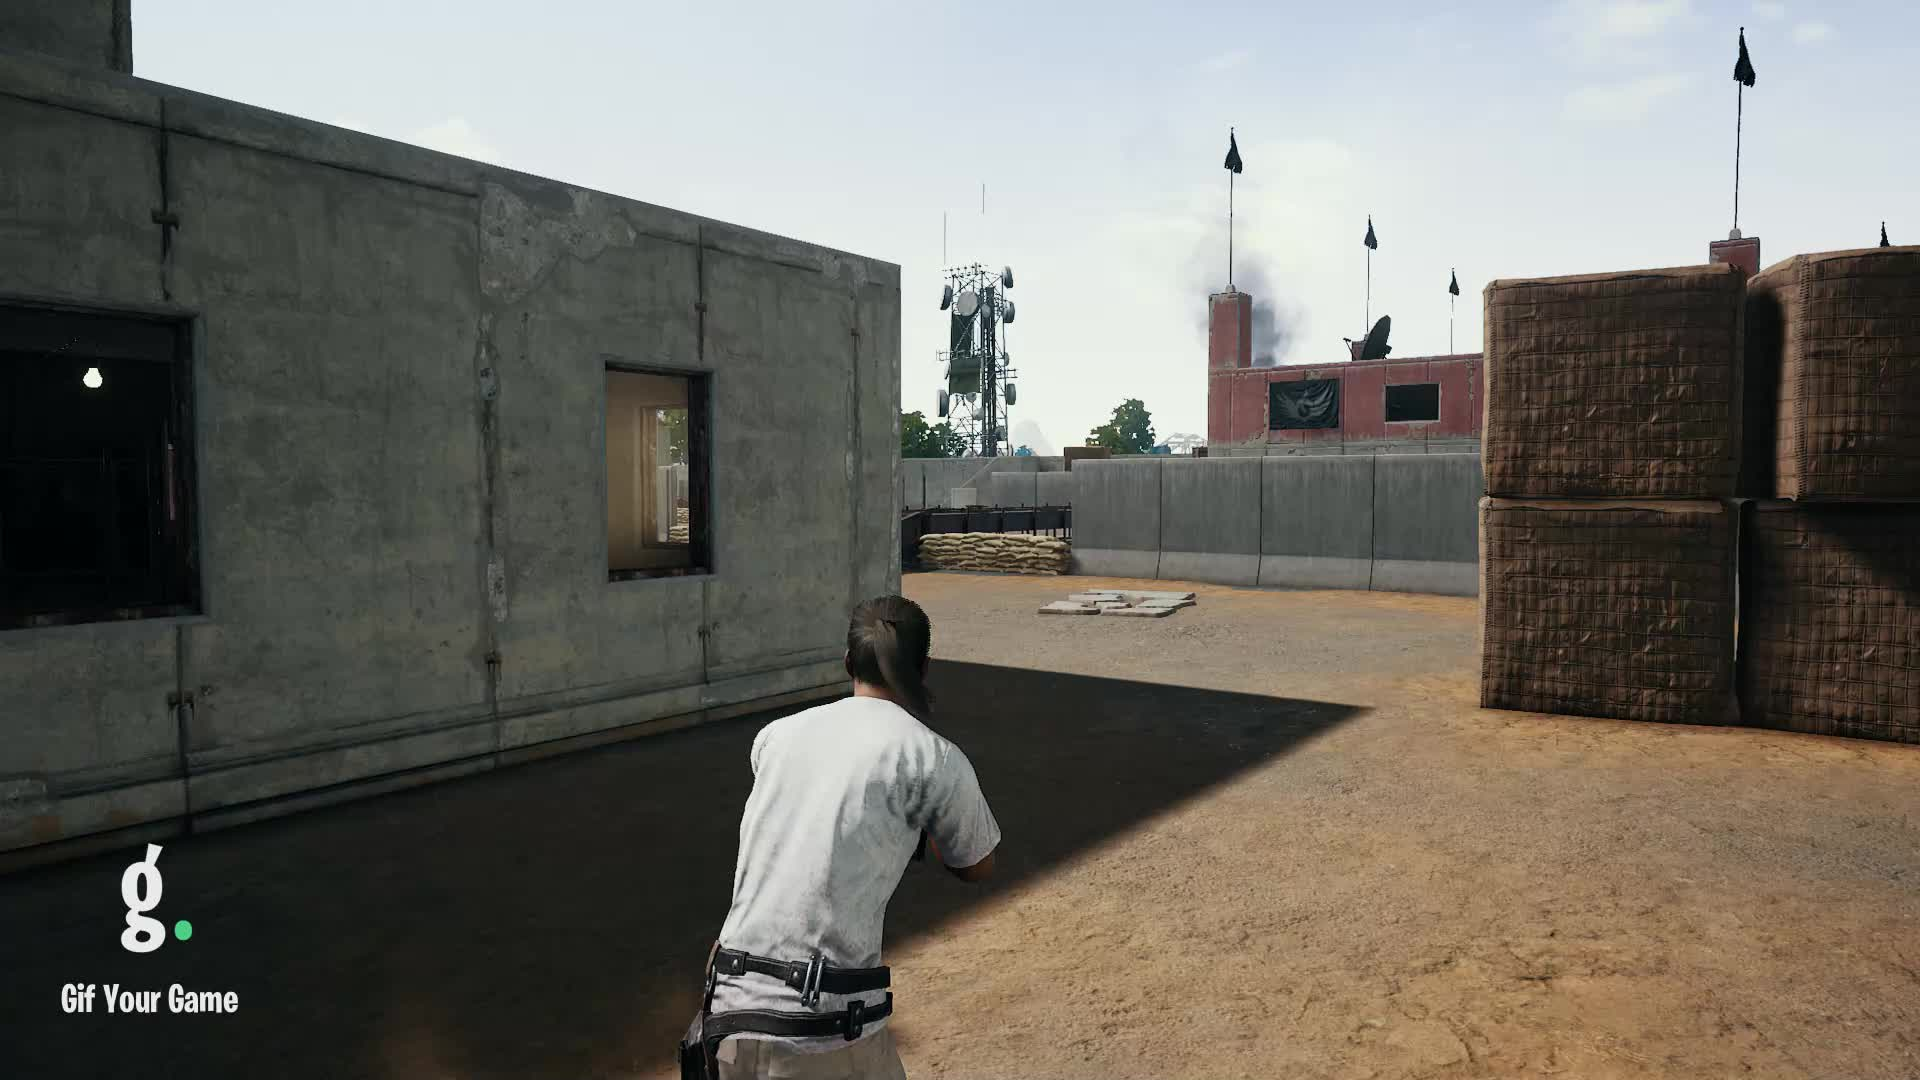 Gif Your Game, GifYourGame, PUBATTLEGROUNDS, pubg, gifyourgame user clip 4 GIFs